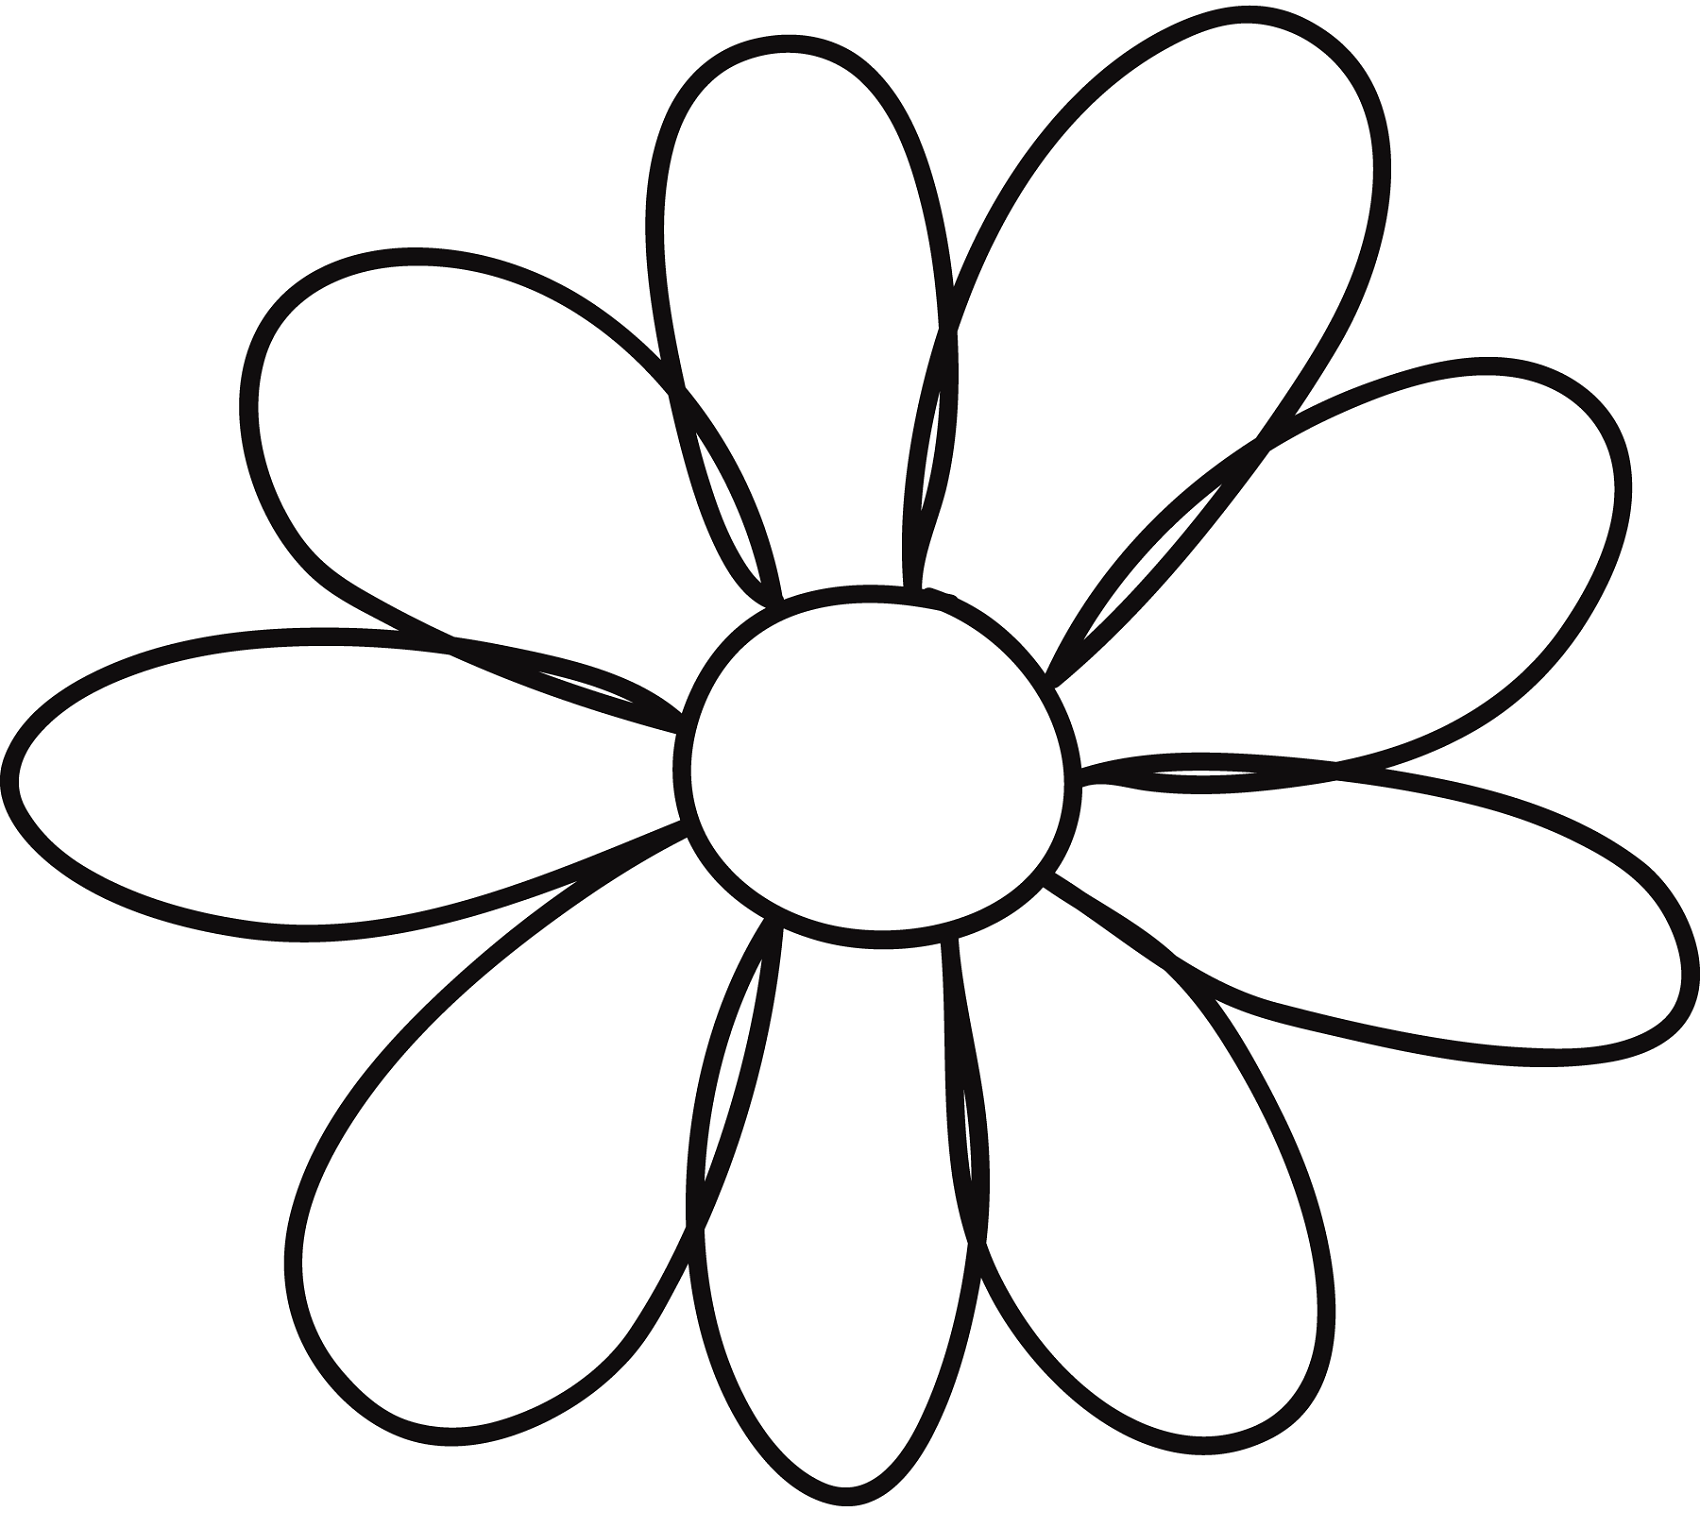 printable flower pictures free printable hibiscus coloring pages for kids pictures flower printable